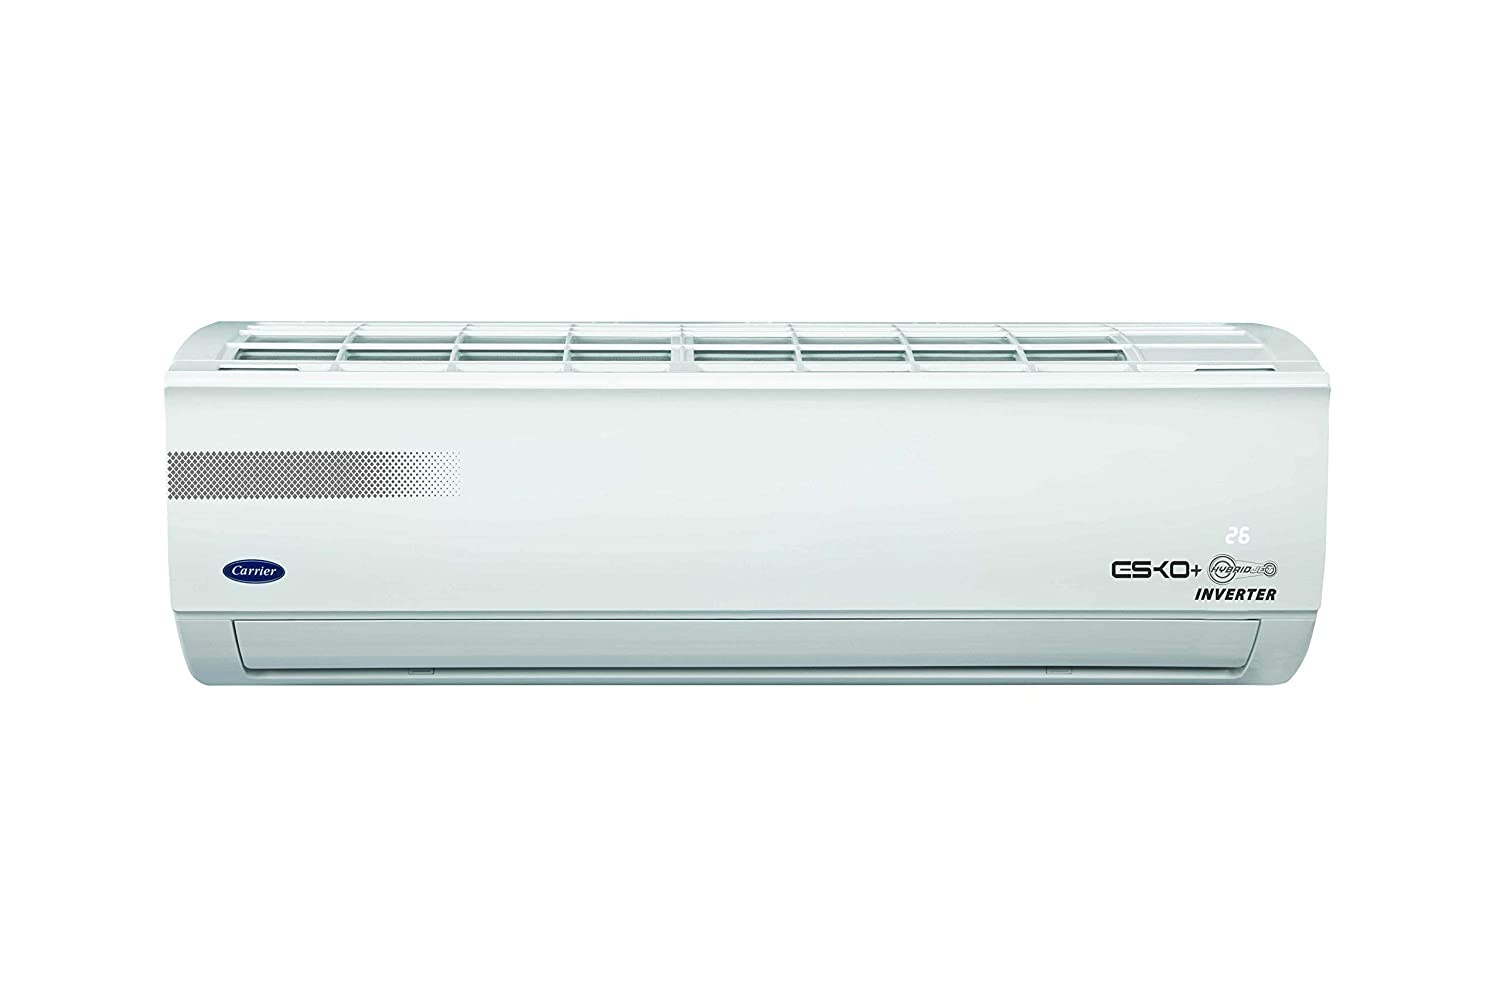 Carrier 1.5 Ton 3 Star Inverter Split AC (Copper ESKO+ HYBRIDJET INV R410ACAI18EK3R49F0 White)